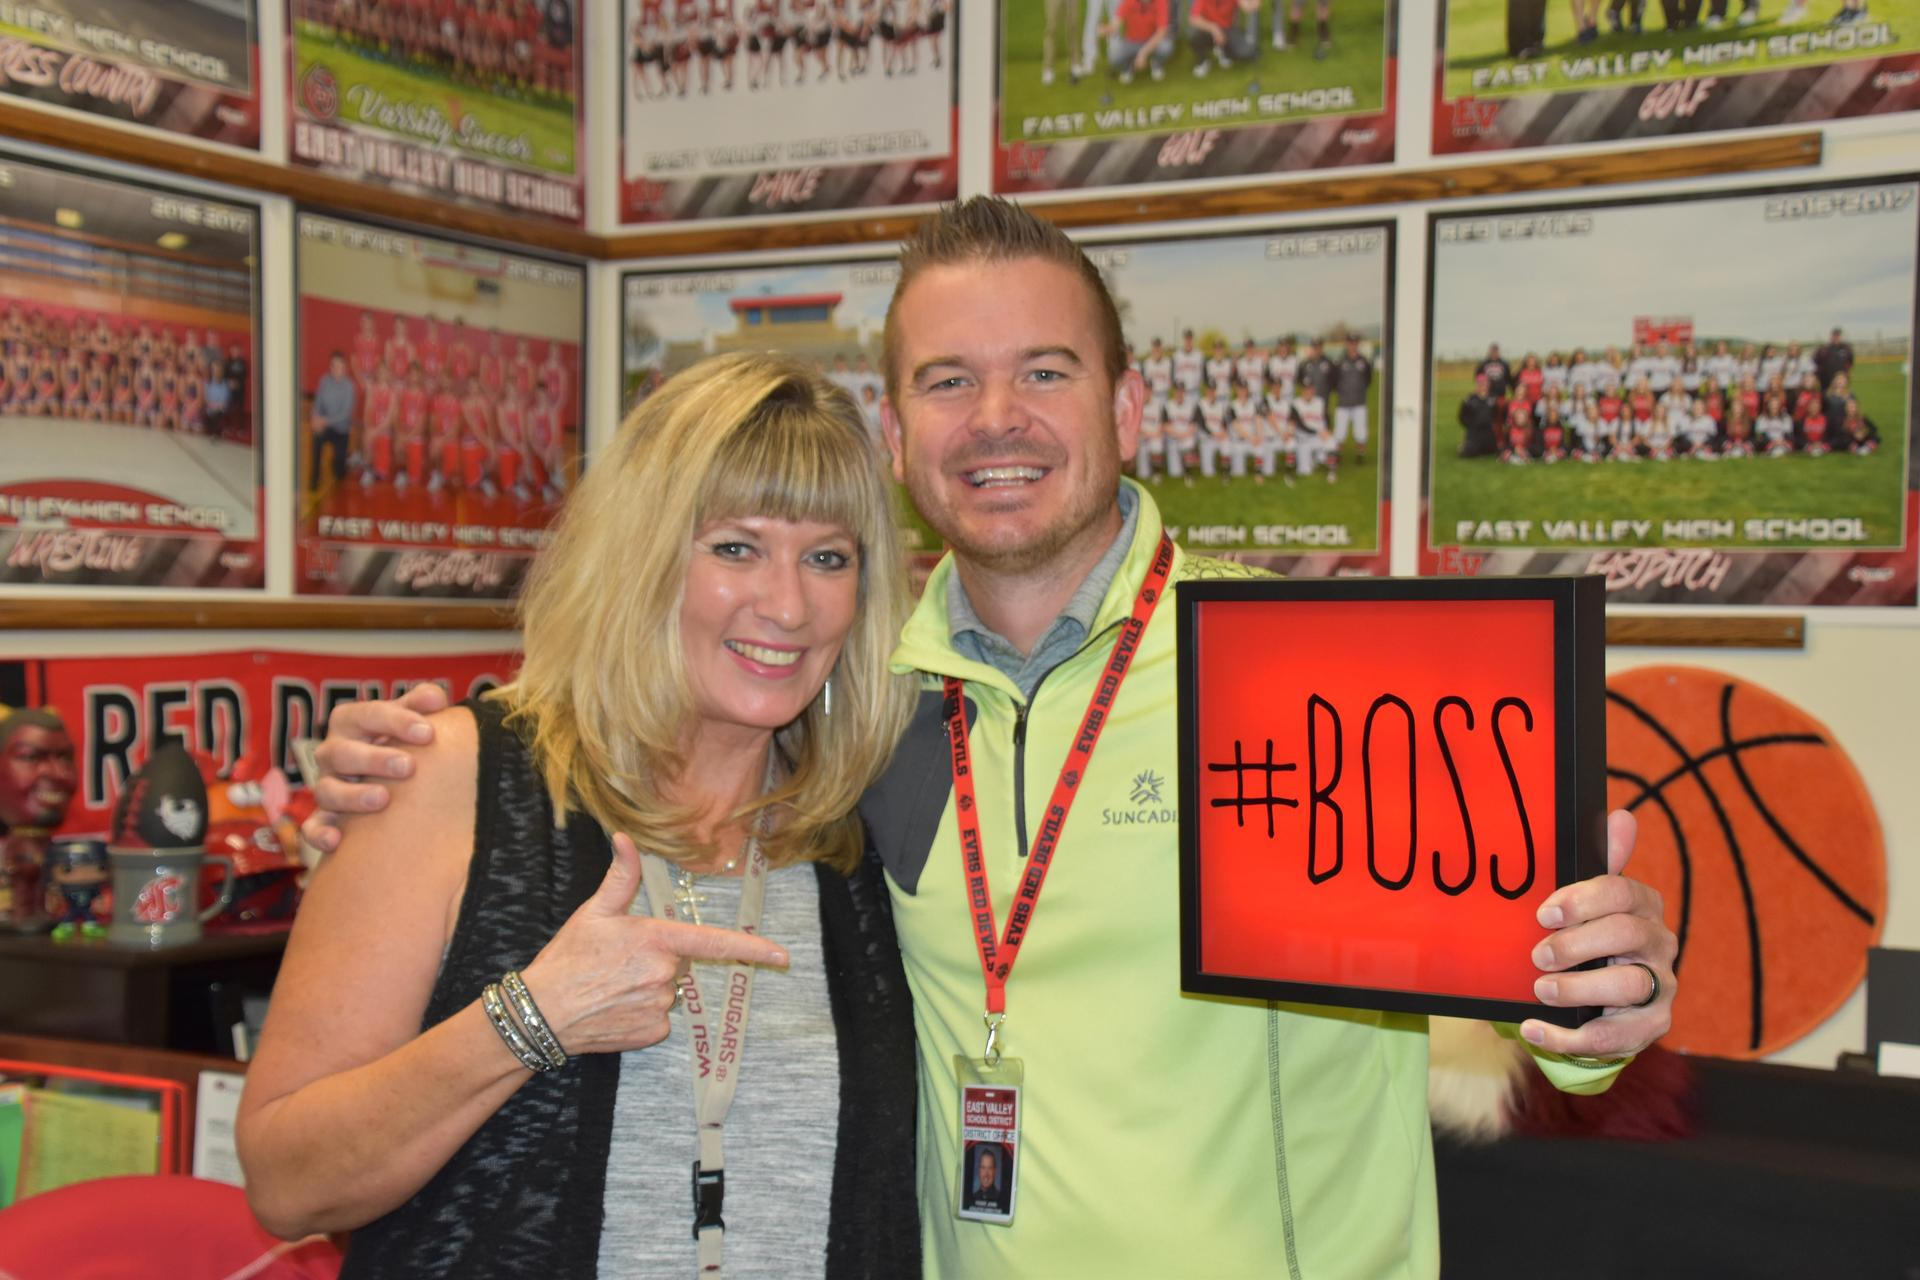 John Yount and Lisa Rossow with the #Boss Award for their work to keep families engaged on Athletics Twitter Account.